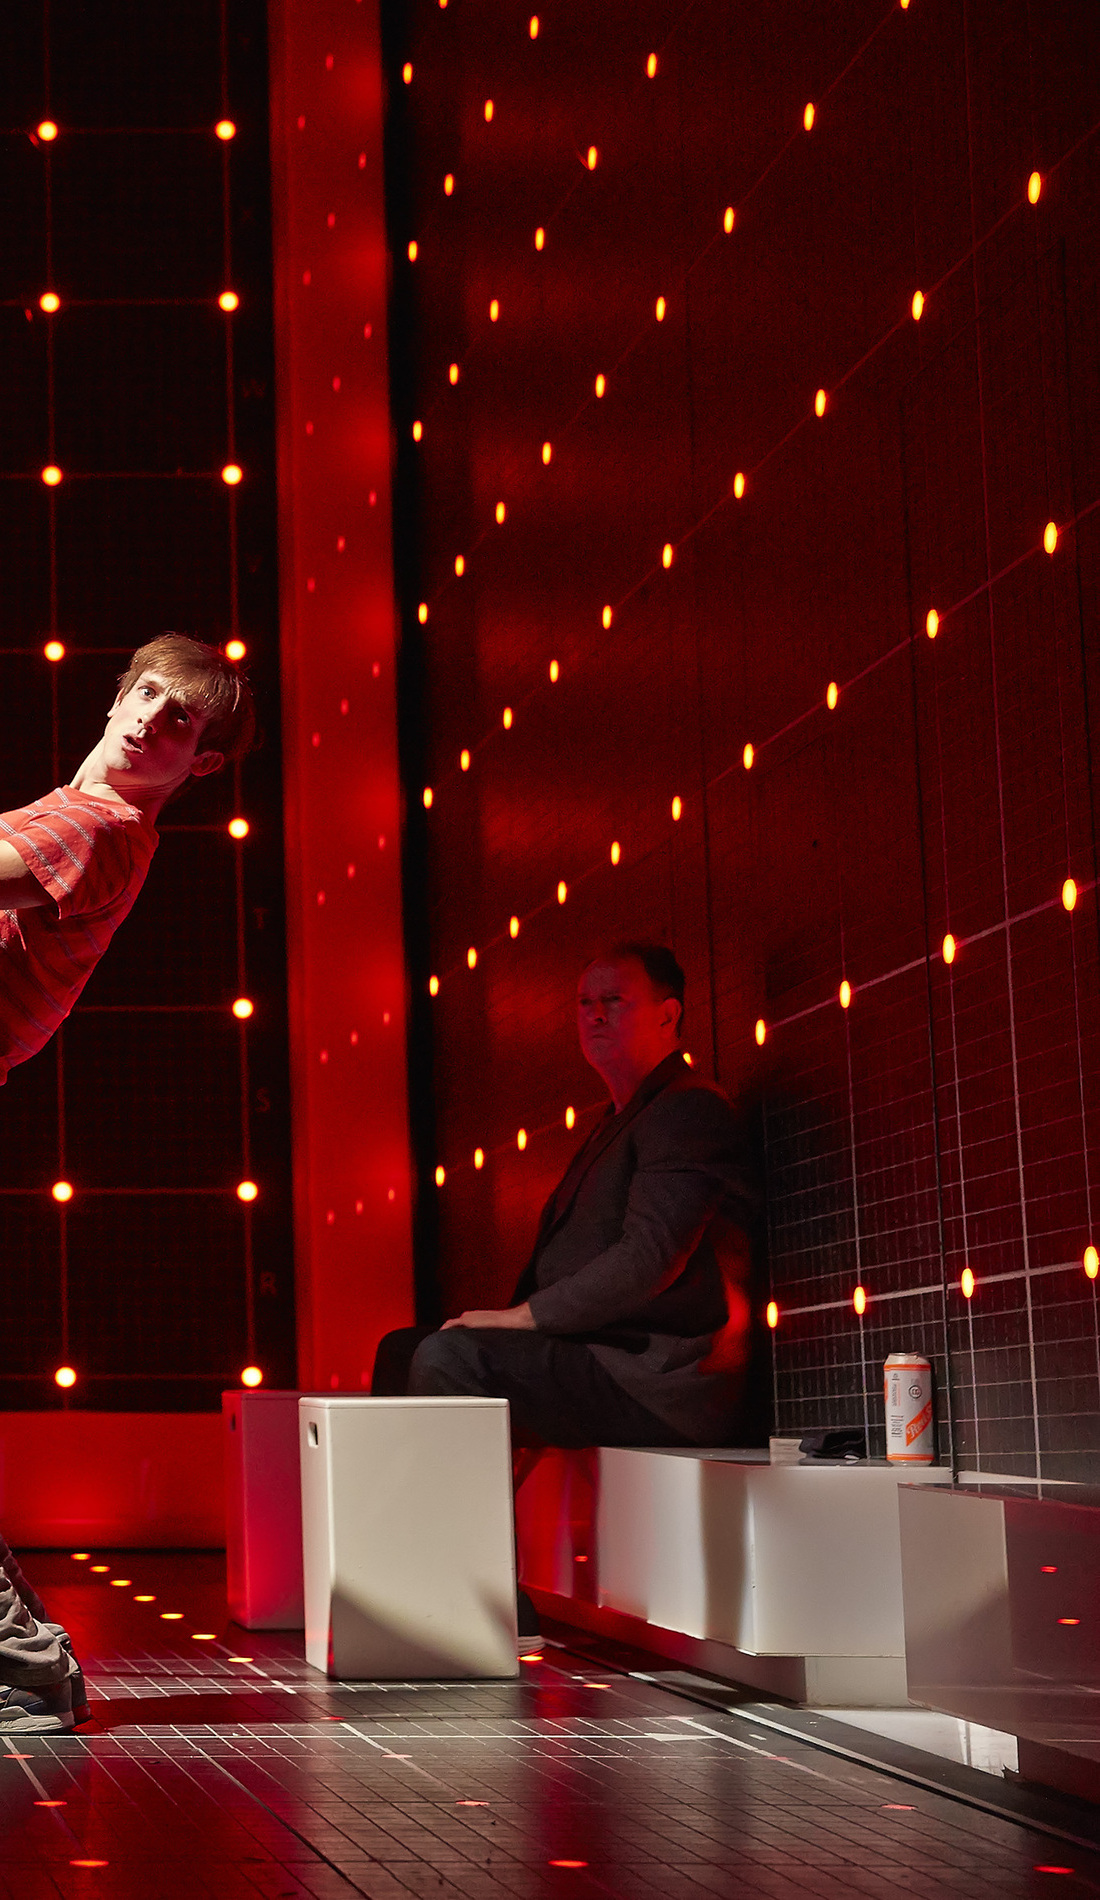 A The Curious Incident of the Dog in the Night-Time live event